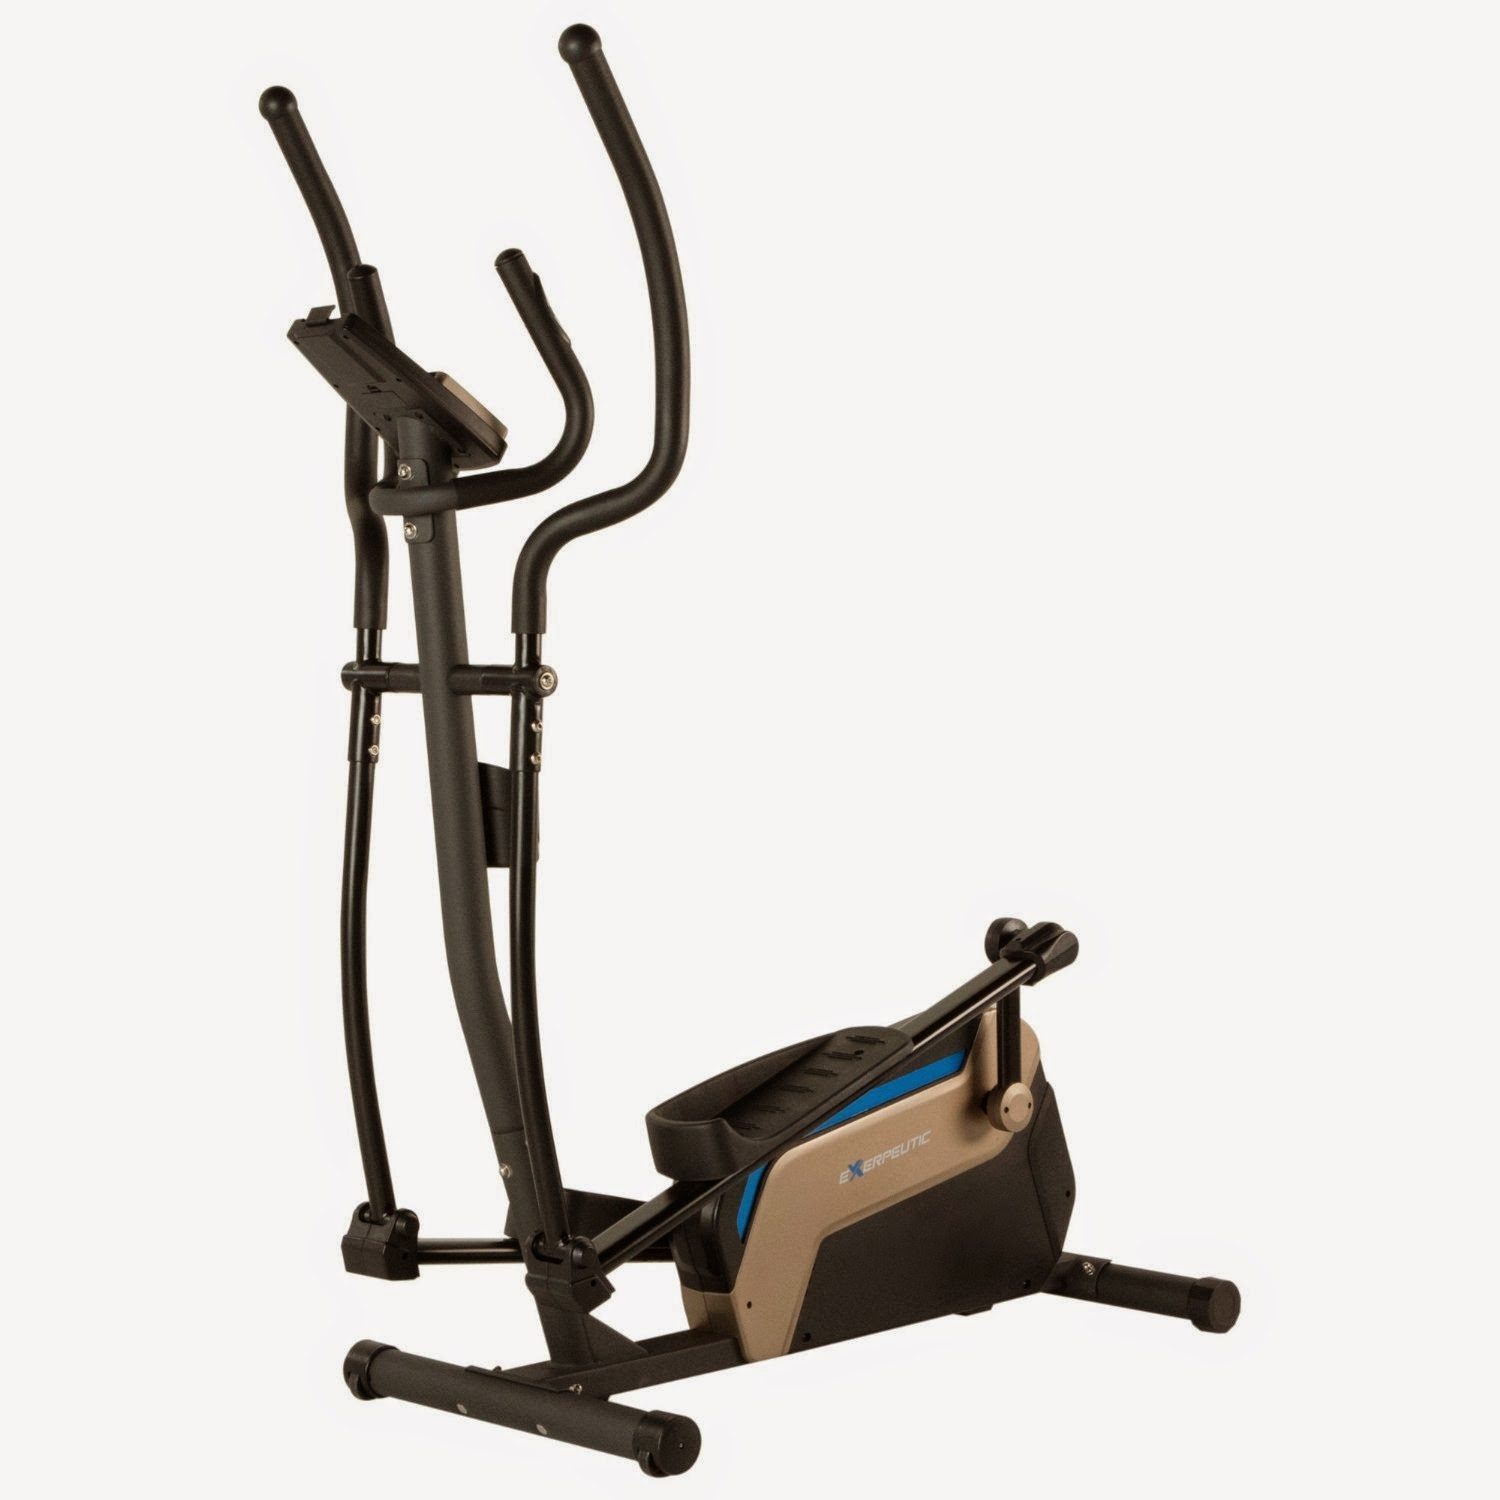 Exerpeutic 4000 Magnetic Elliptical Trainer with Double Transmission Drive, features reviewed & compared with Exerpeutic 5000